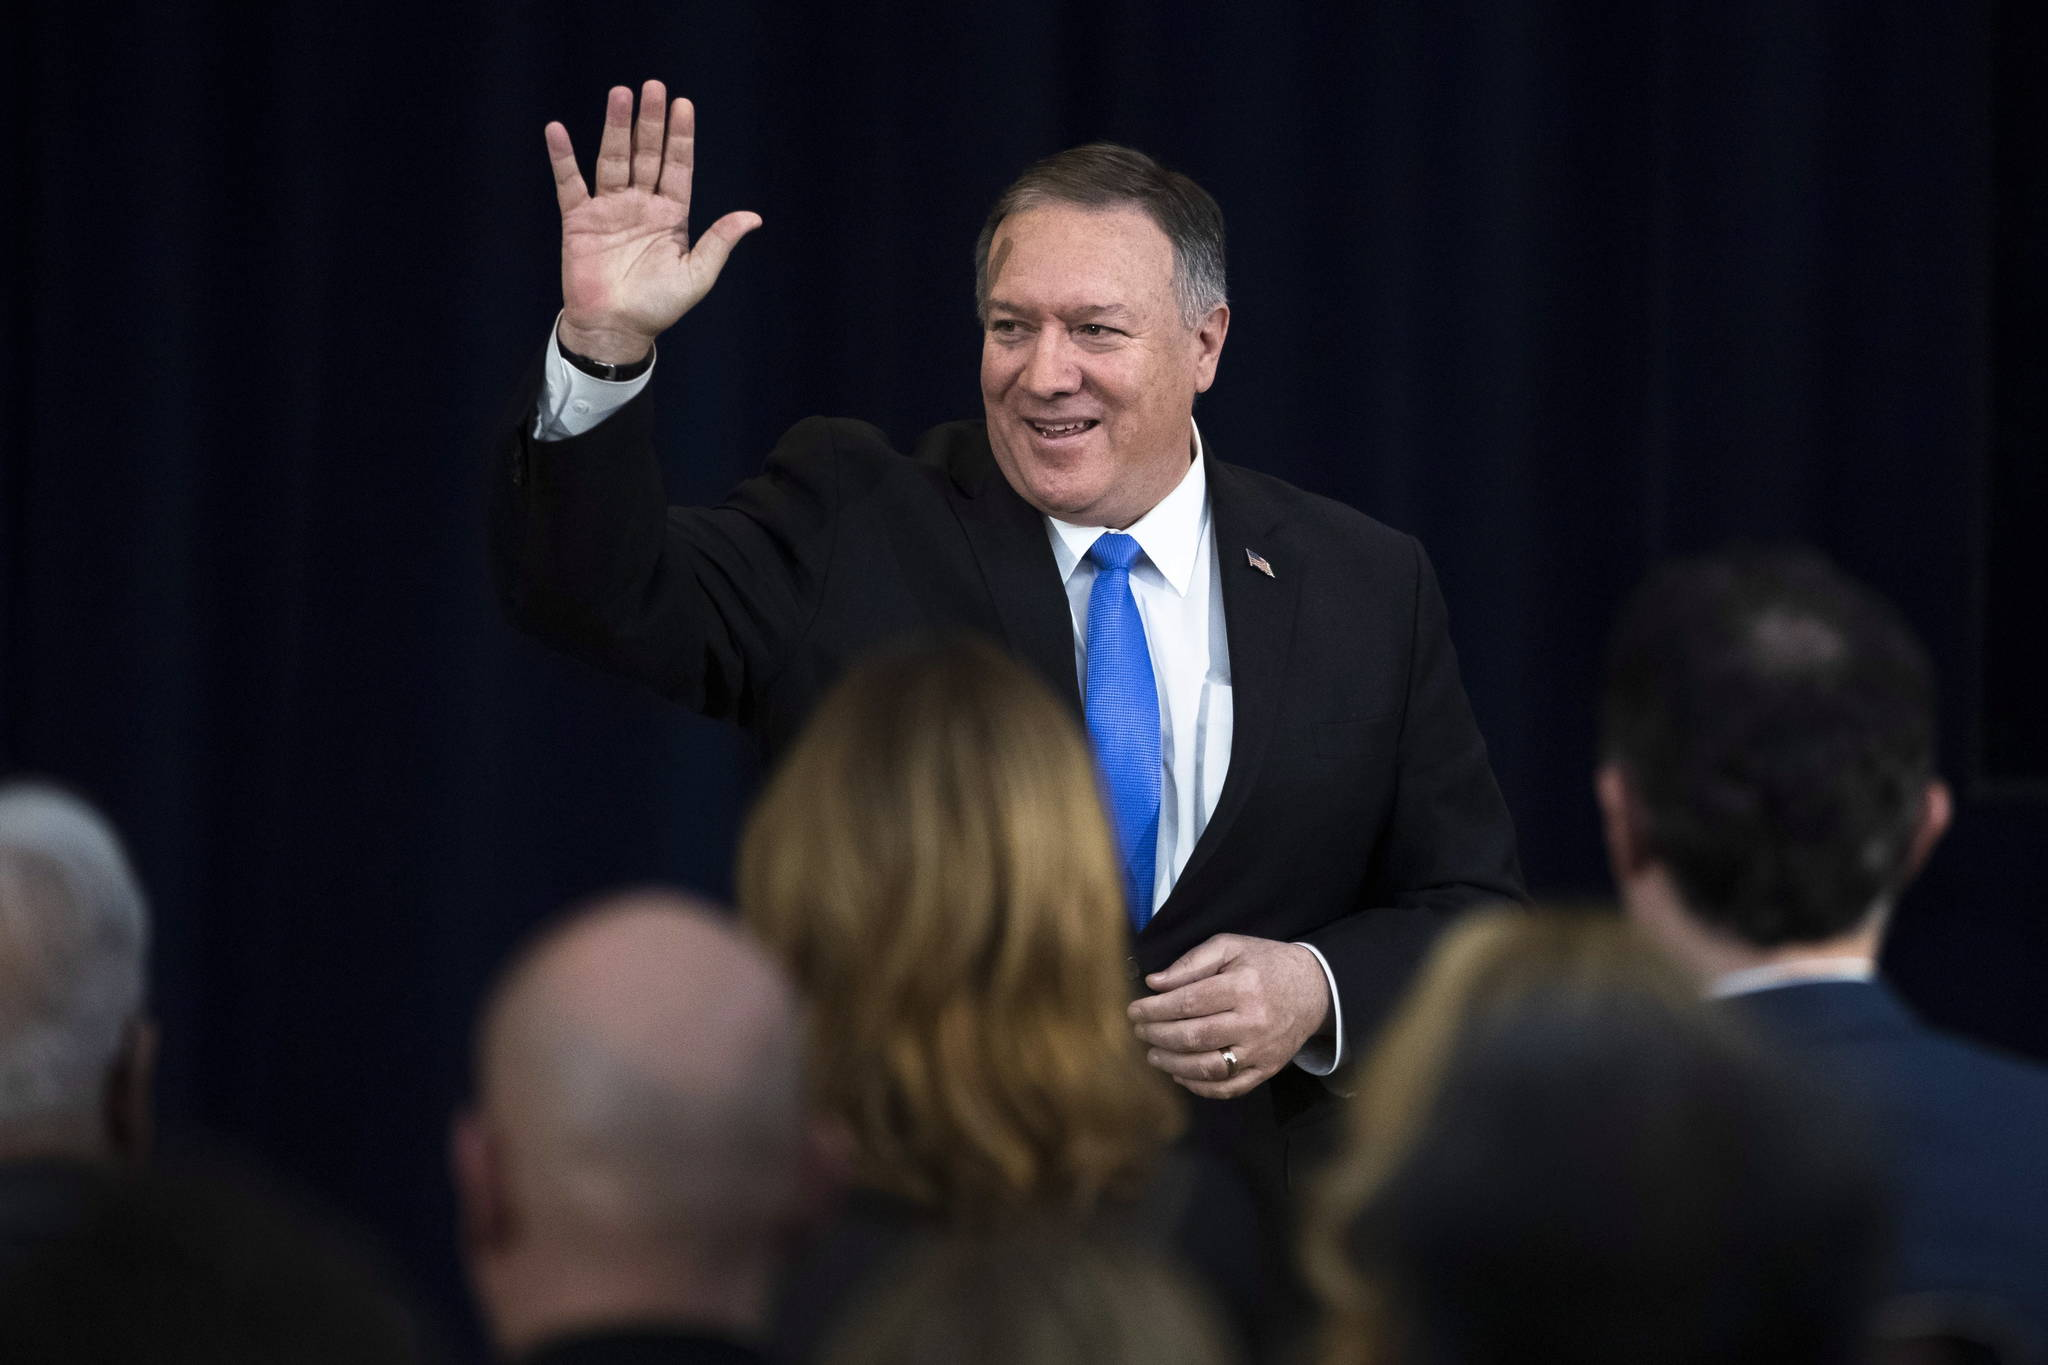 """Secretary of State Mike Pompeo departs an event at the State Department in Washington on December 19, 2019. U.S. Secretary of State Mike Pompeo says his country is sticking with Canada in fighting what he calls China's """"coercive detentions of Canadian citizens."""" Pompeo and Foreign Affairs Minister Francois-Philippe Champagne say they talked Monday about a range of global concerns. THE CANADIAN PRESS/AP, Matt Rourke"""